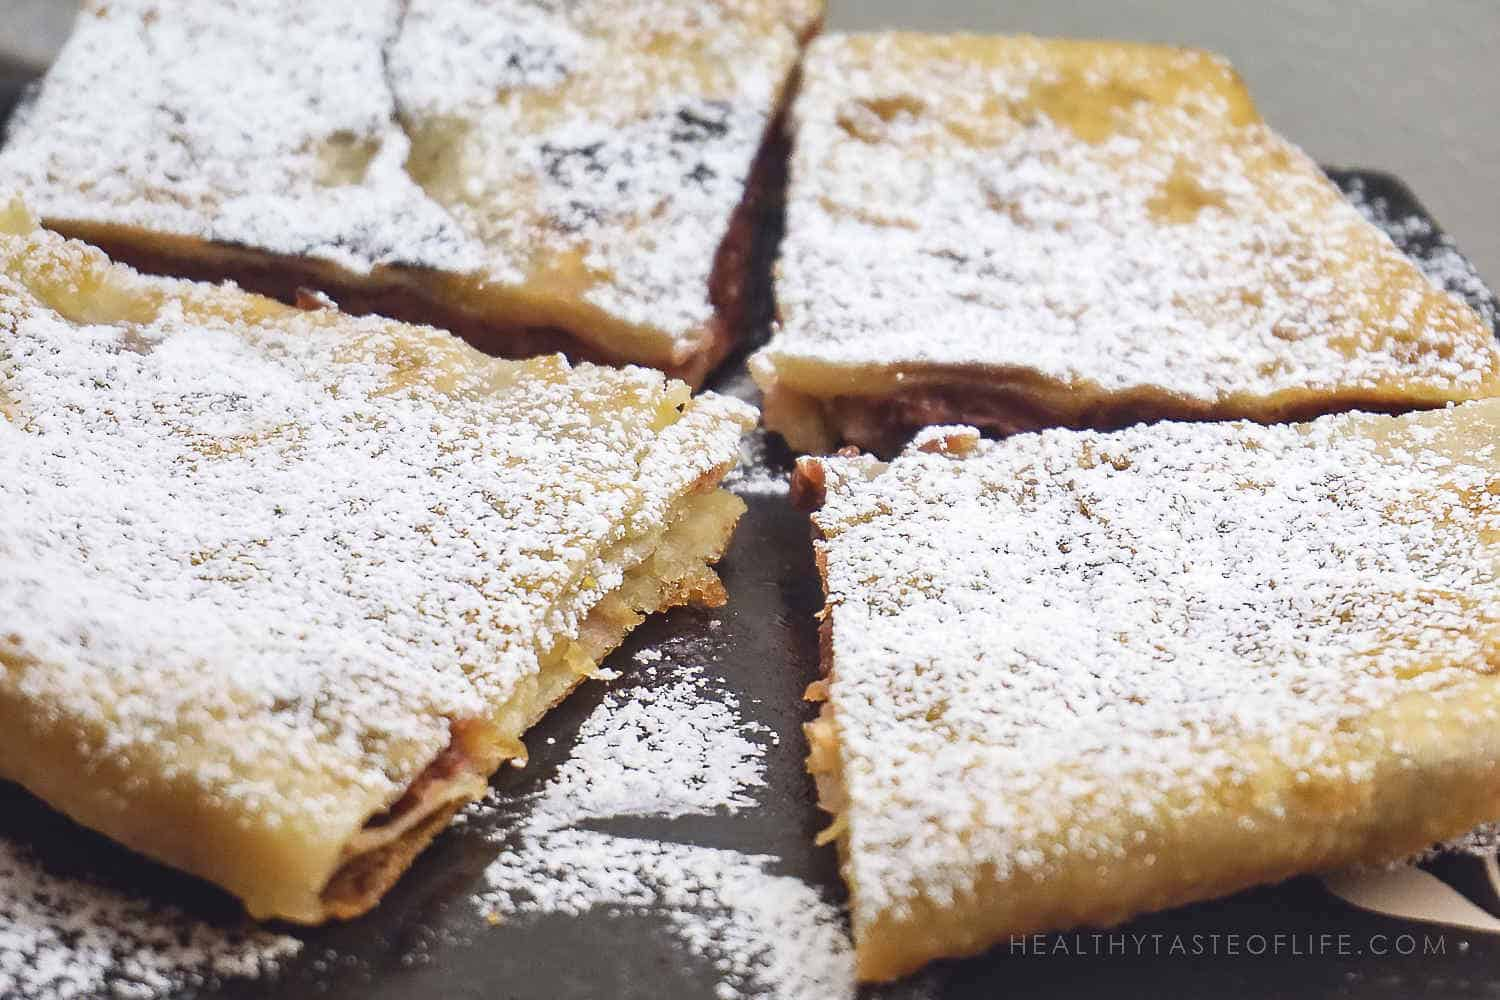 stuffed flatbread recipe with apples and sour cherries